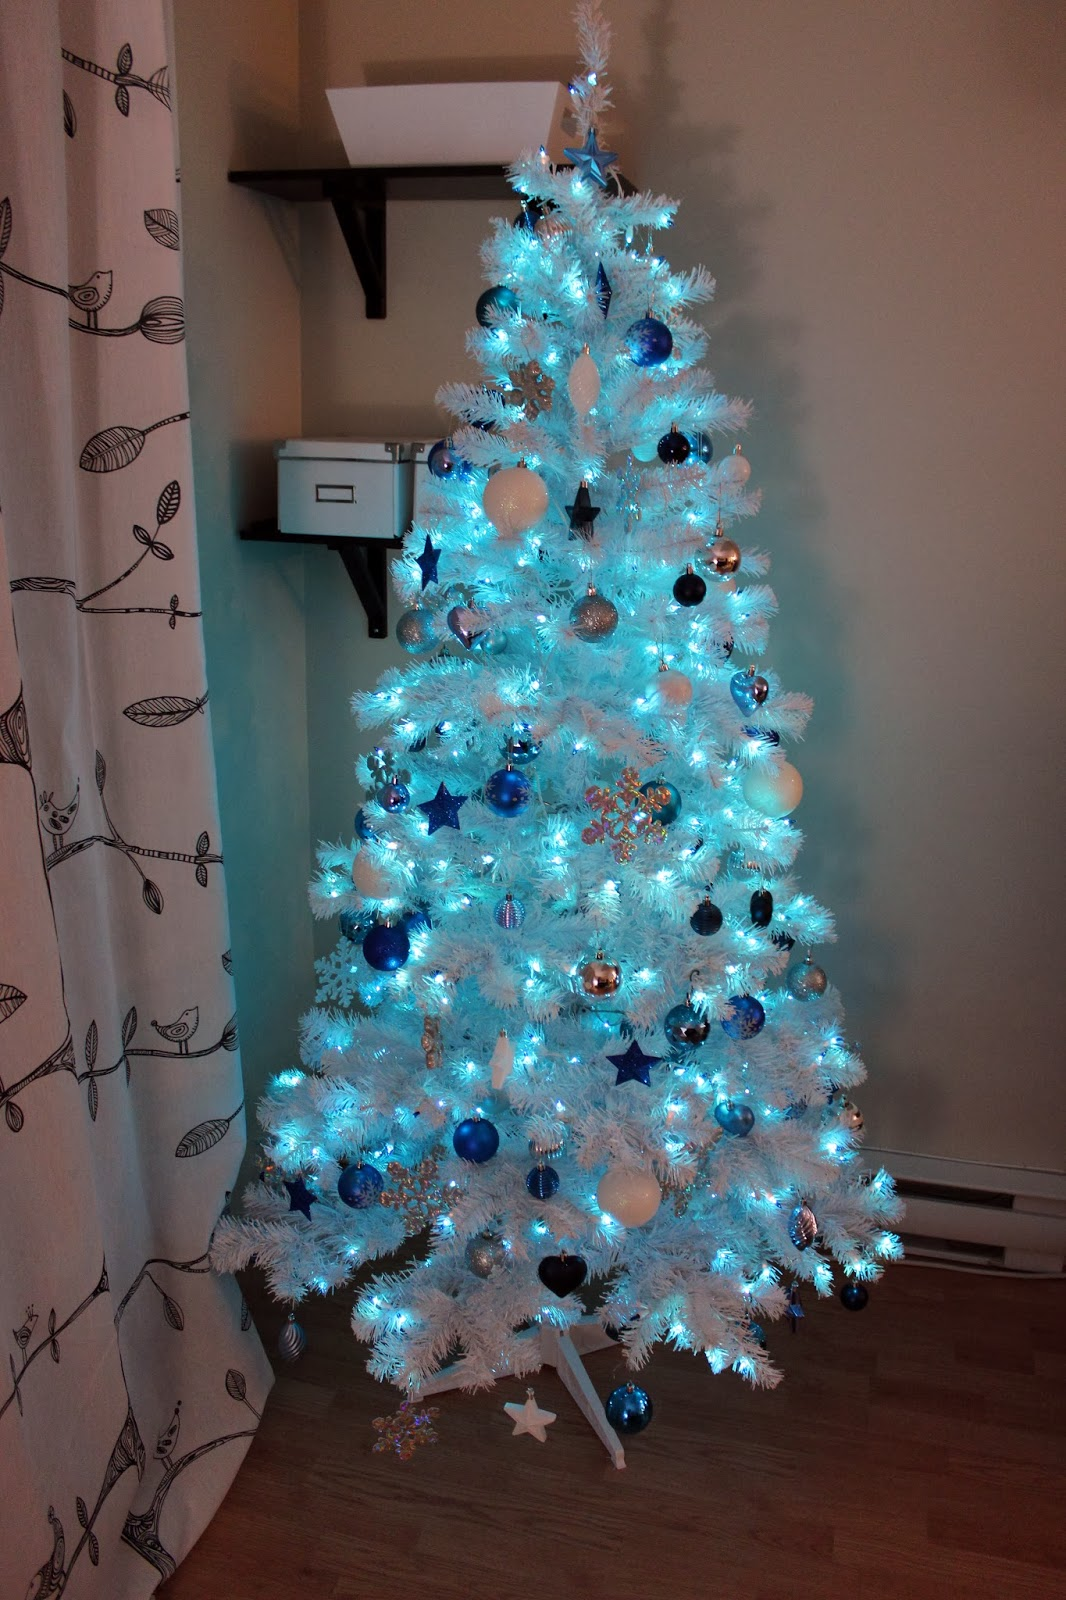 Luhivy's favorite things: 12 Days of Christmas : My Christmas Tree (Silver, blue and white ...